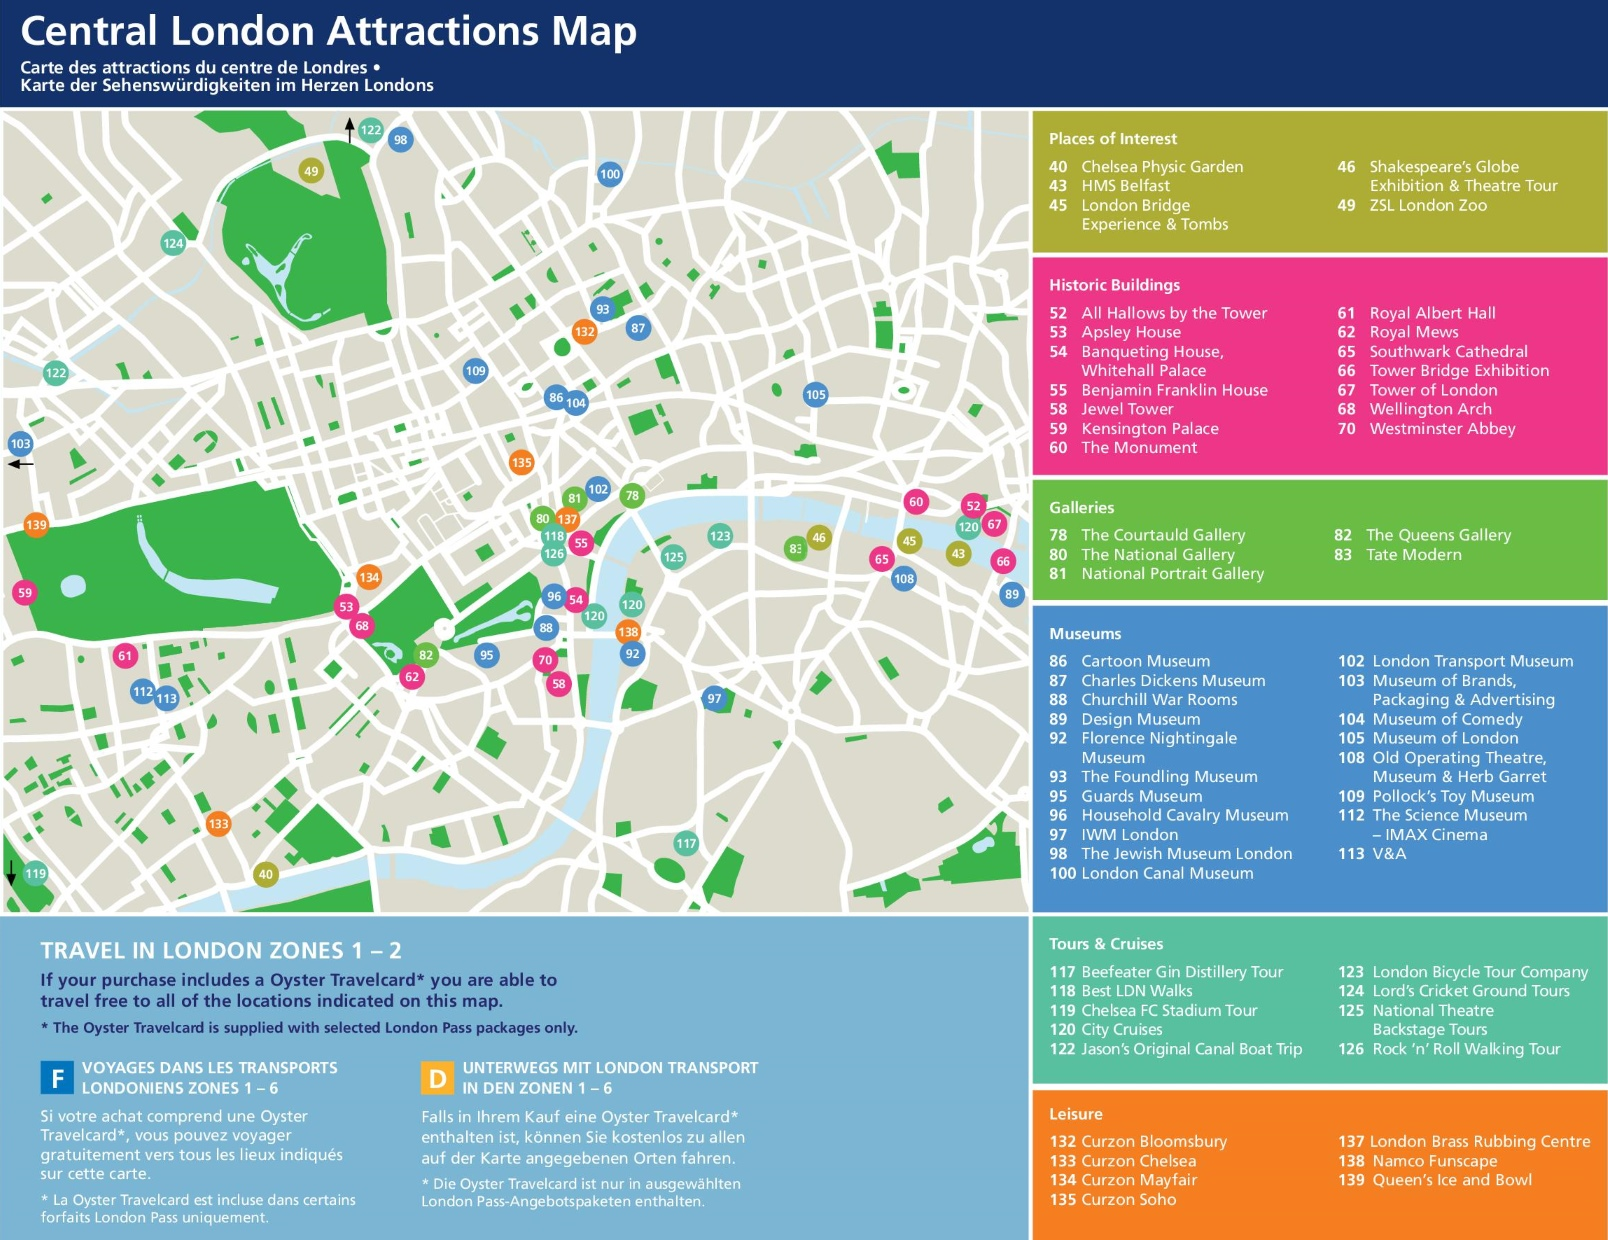 London Map Attractions.Central London Tourist Attractions Map